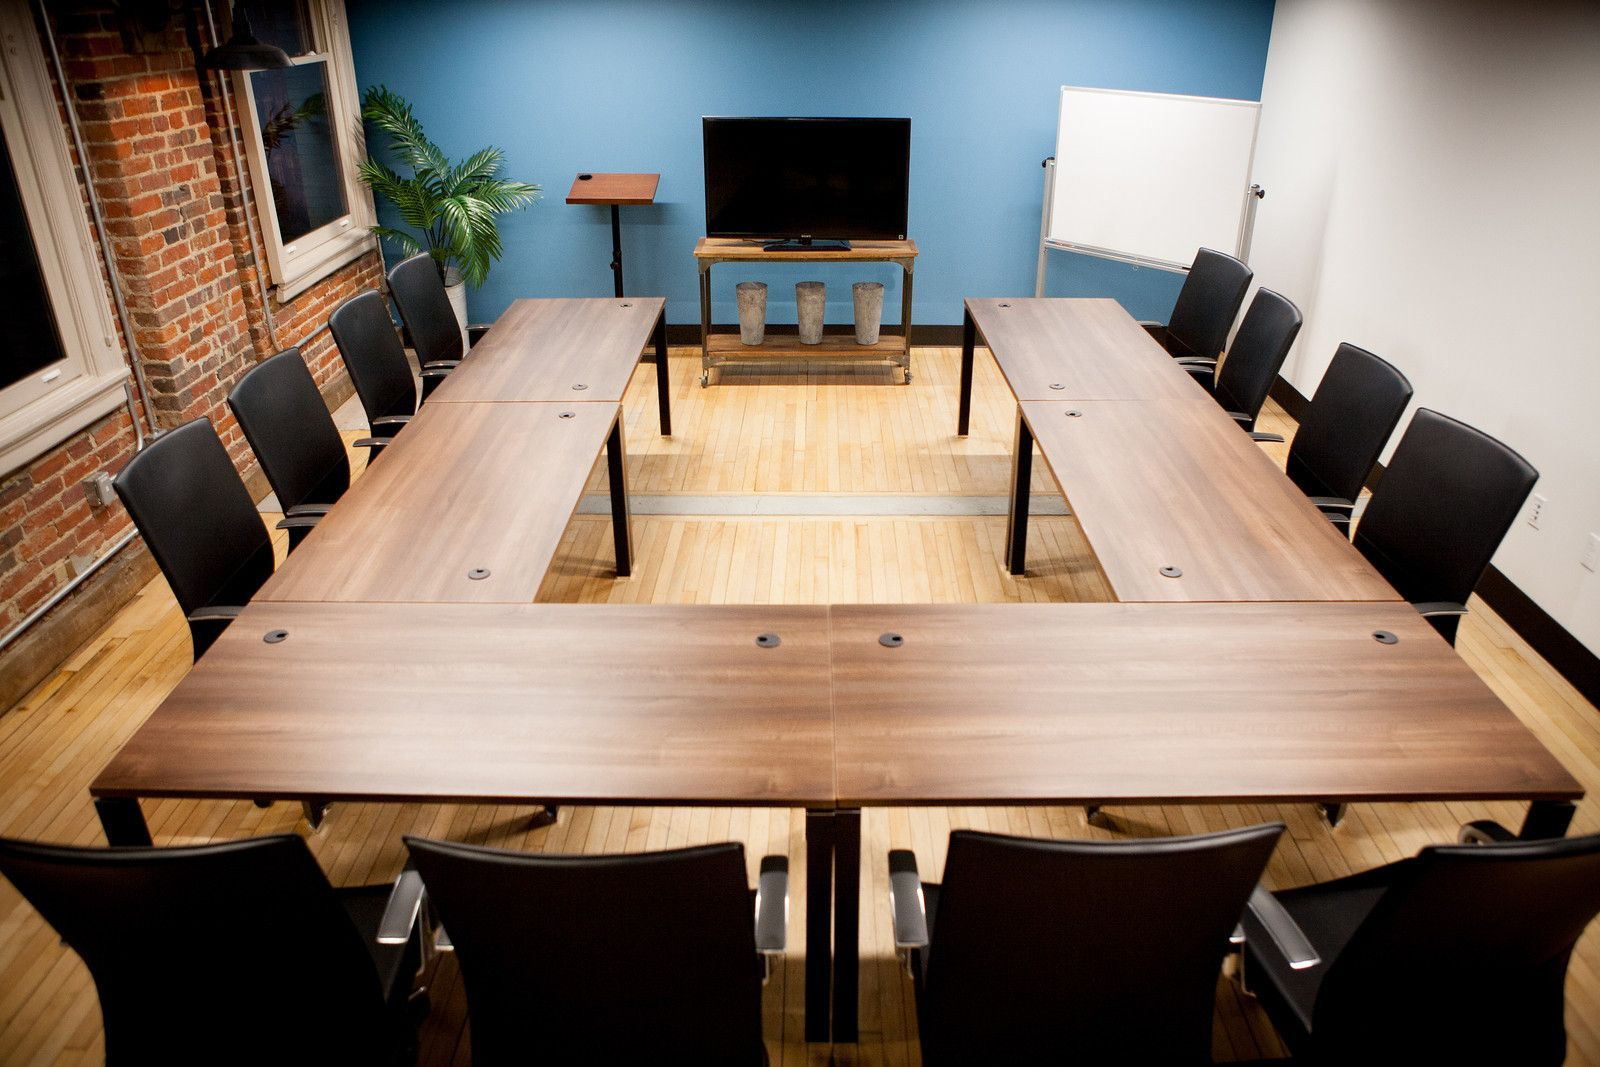 Meeting room 1600 1067 conference room for Conference room setup ideas